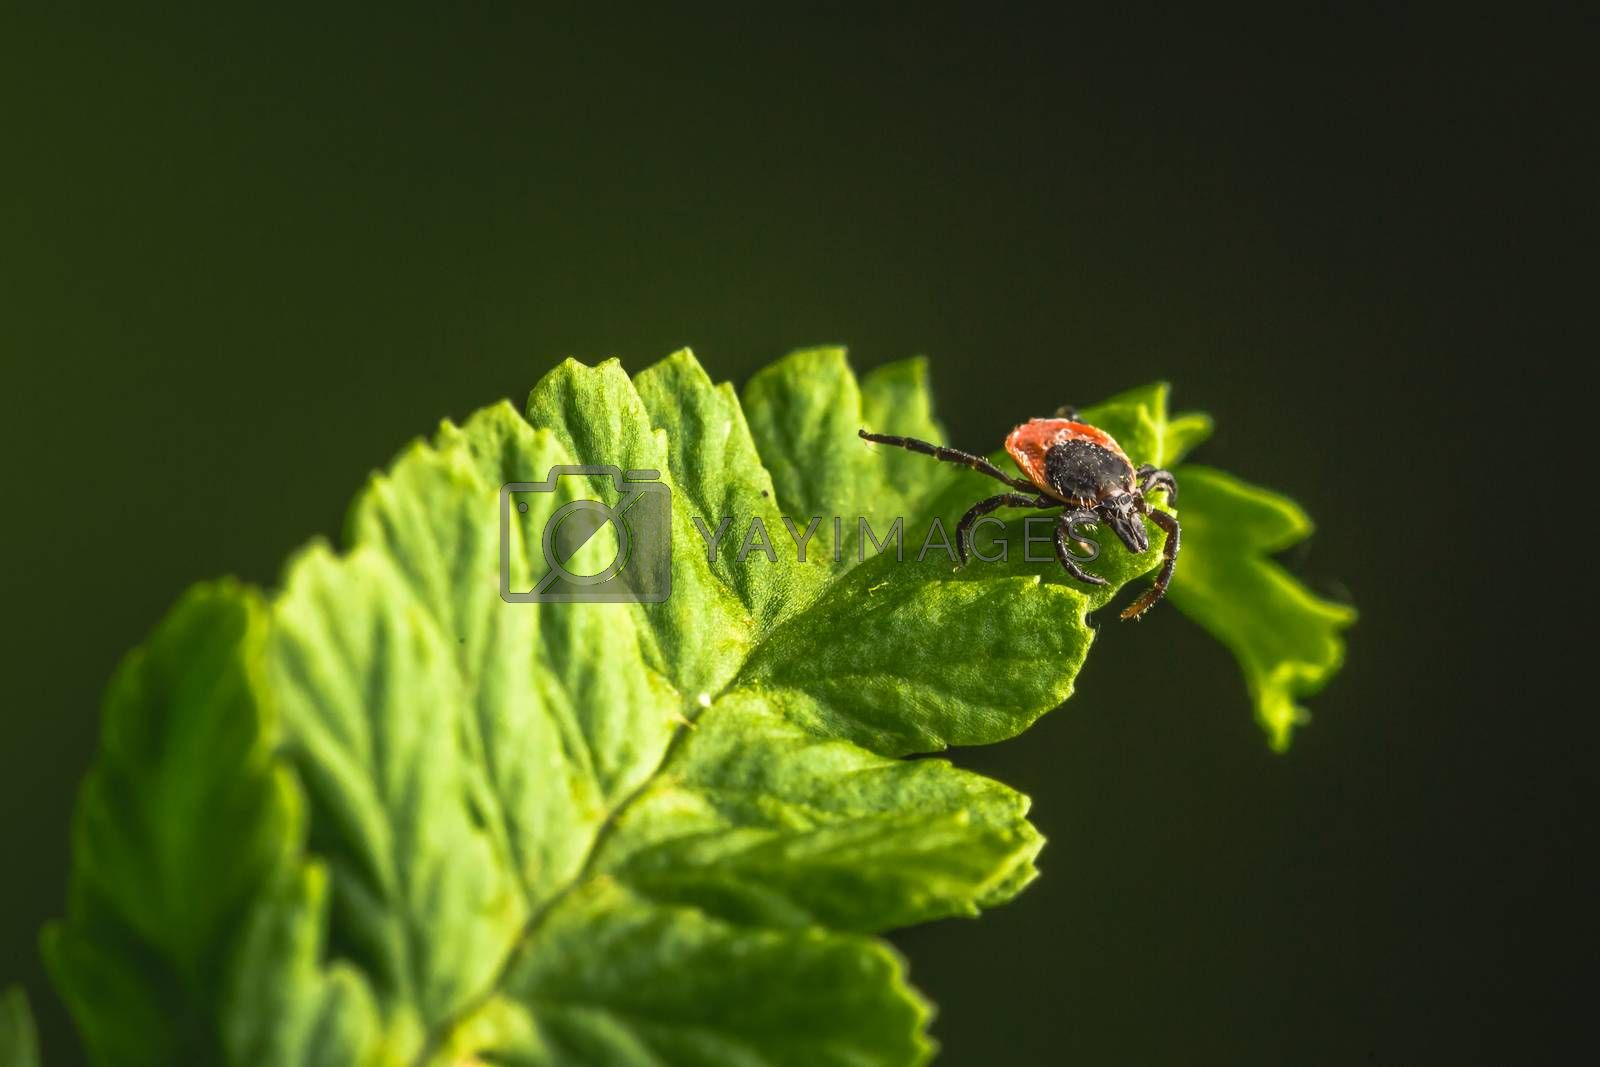 Royalty free image of Female of the tick sitting on a leaf, green background. A common European parasite attacking also humans. by petrsvoboda91